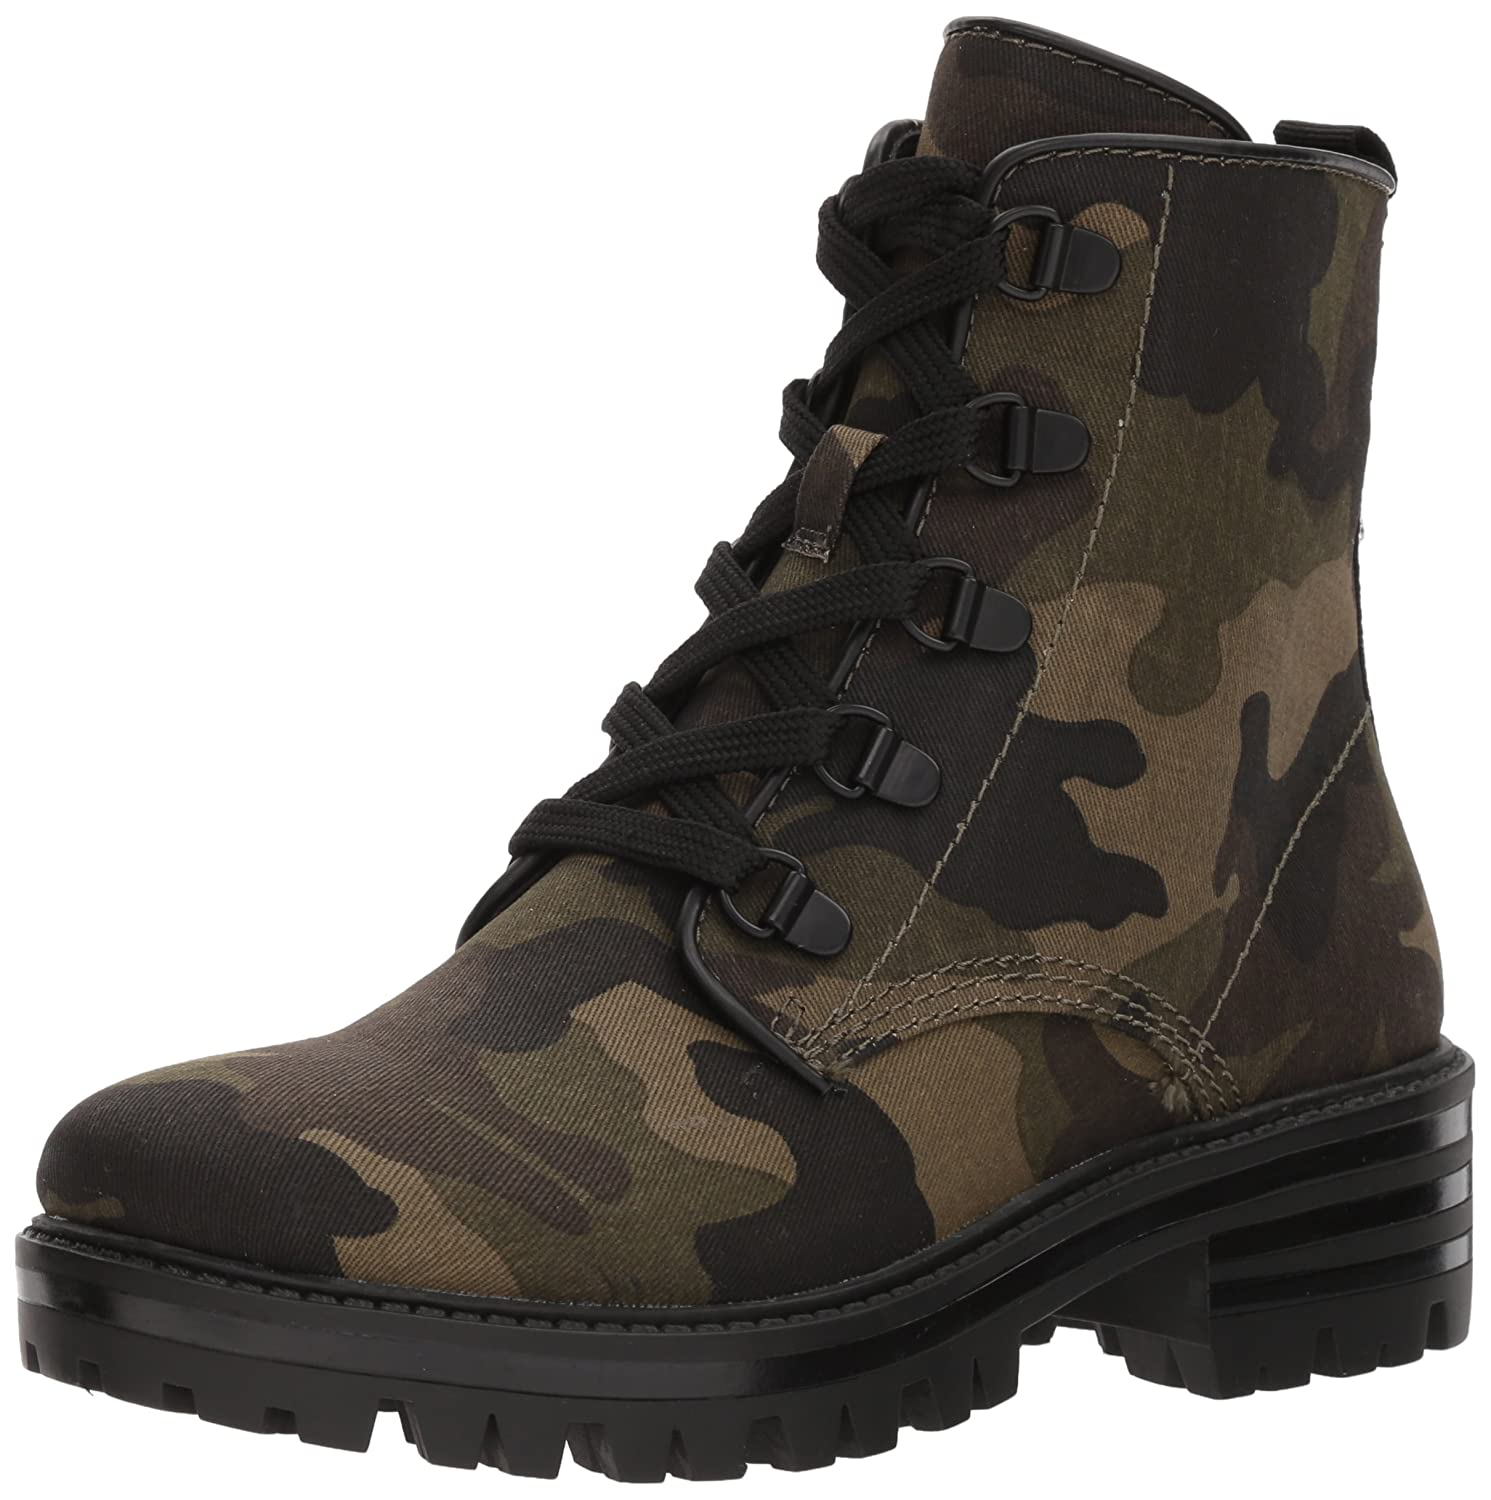 KENDALL + KYLIE Women's Epic Ankle Boot B078NJ3RNM 11 B(M) US|Green Camo